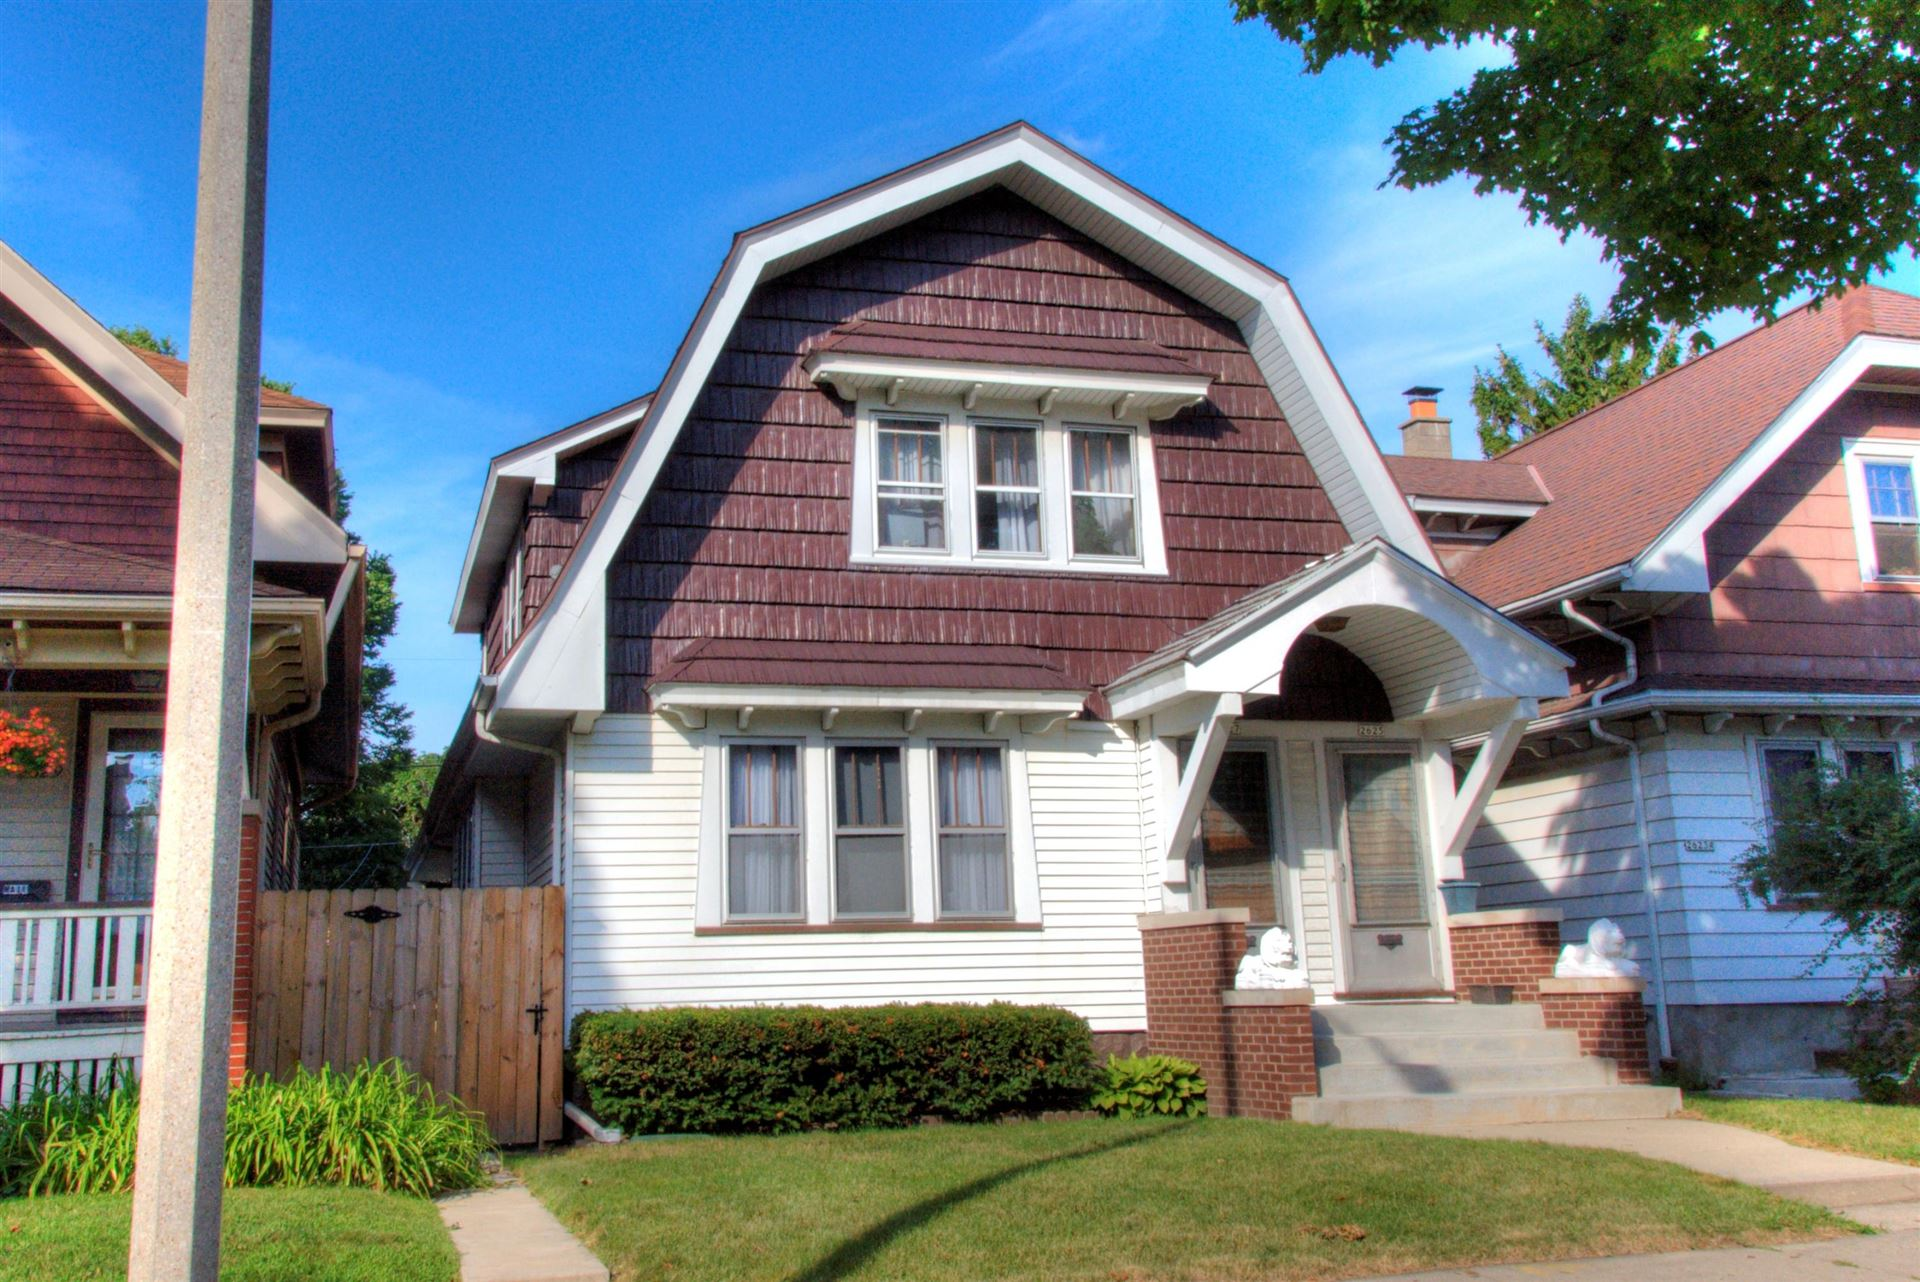 2625 S Delaware Ave #2627, Milwaukee, WI 53207 - #: 1702475